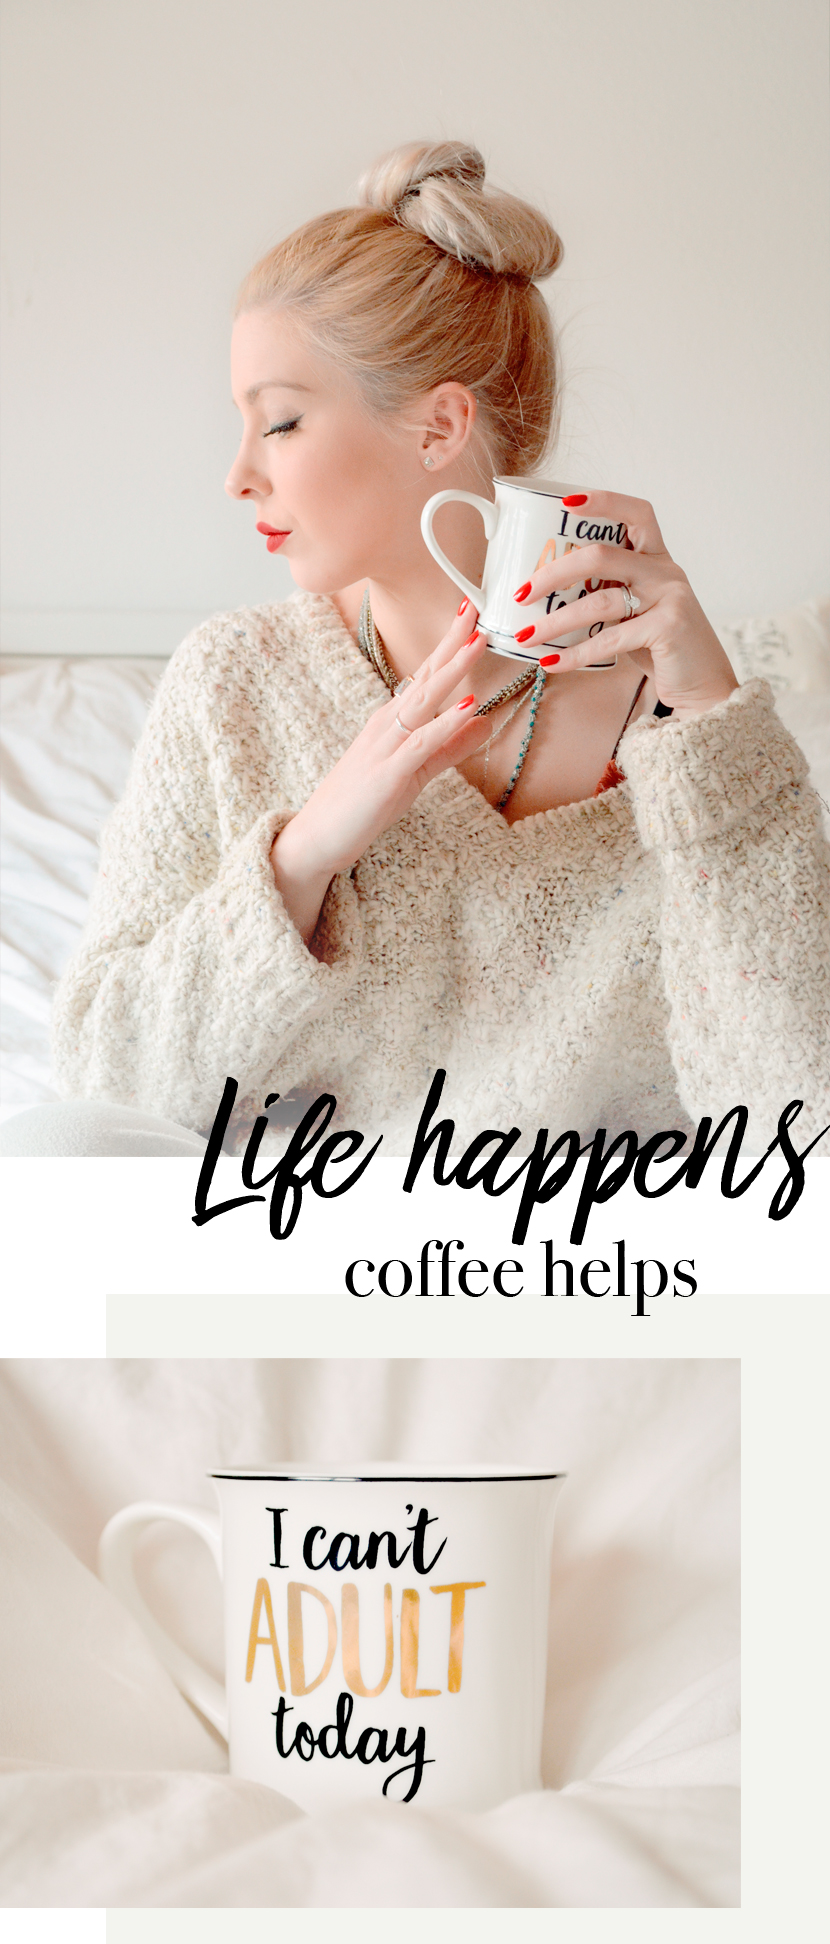 I-cannot-adult-today-coffee-therapy-Blog-Belle-Melange-1